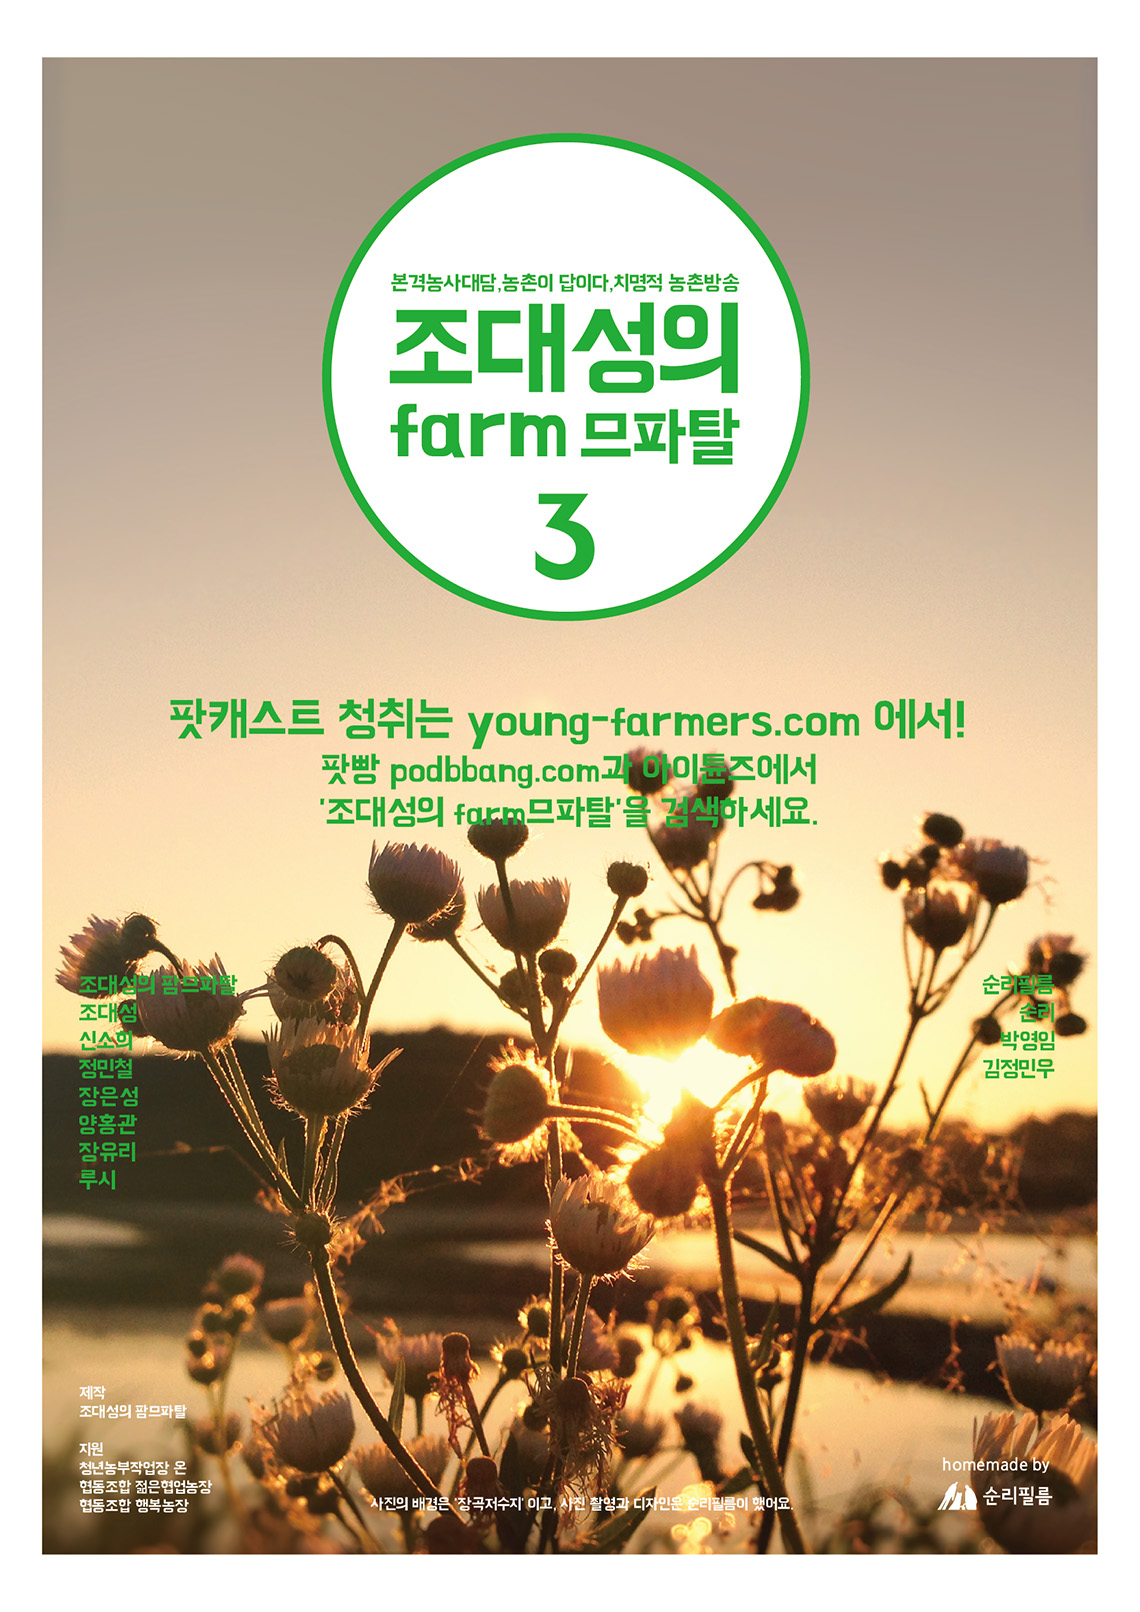 20150704_farmfatal03_podcast_poster